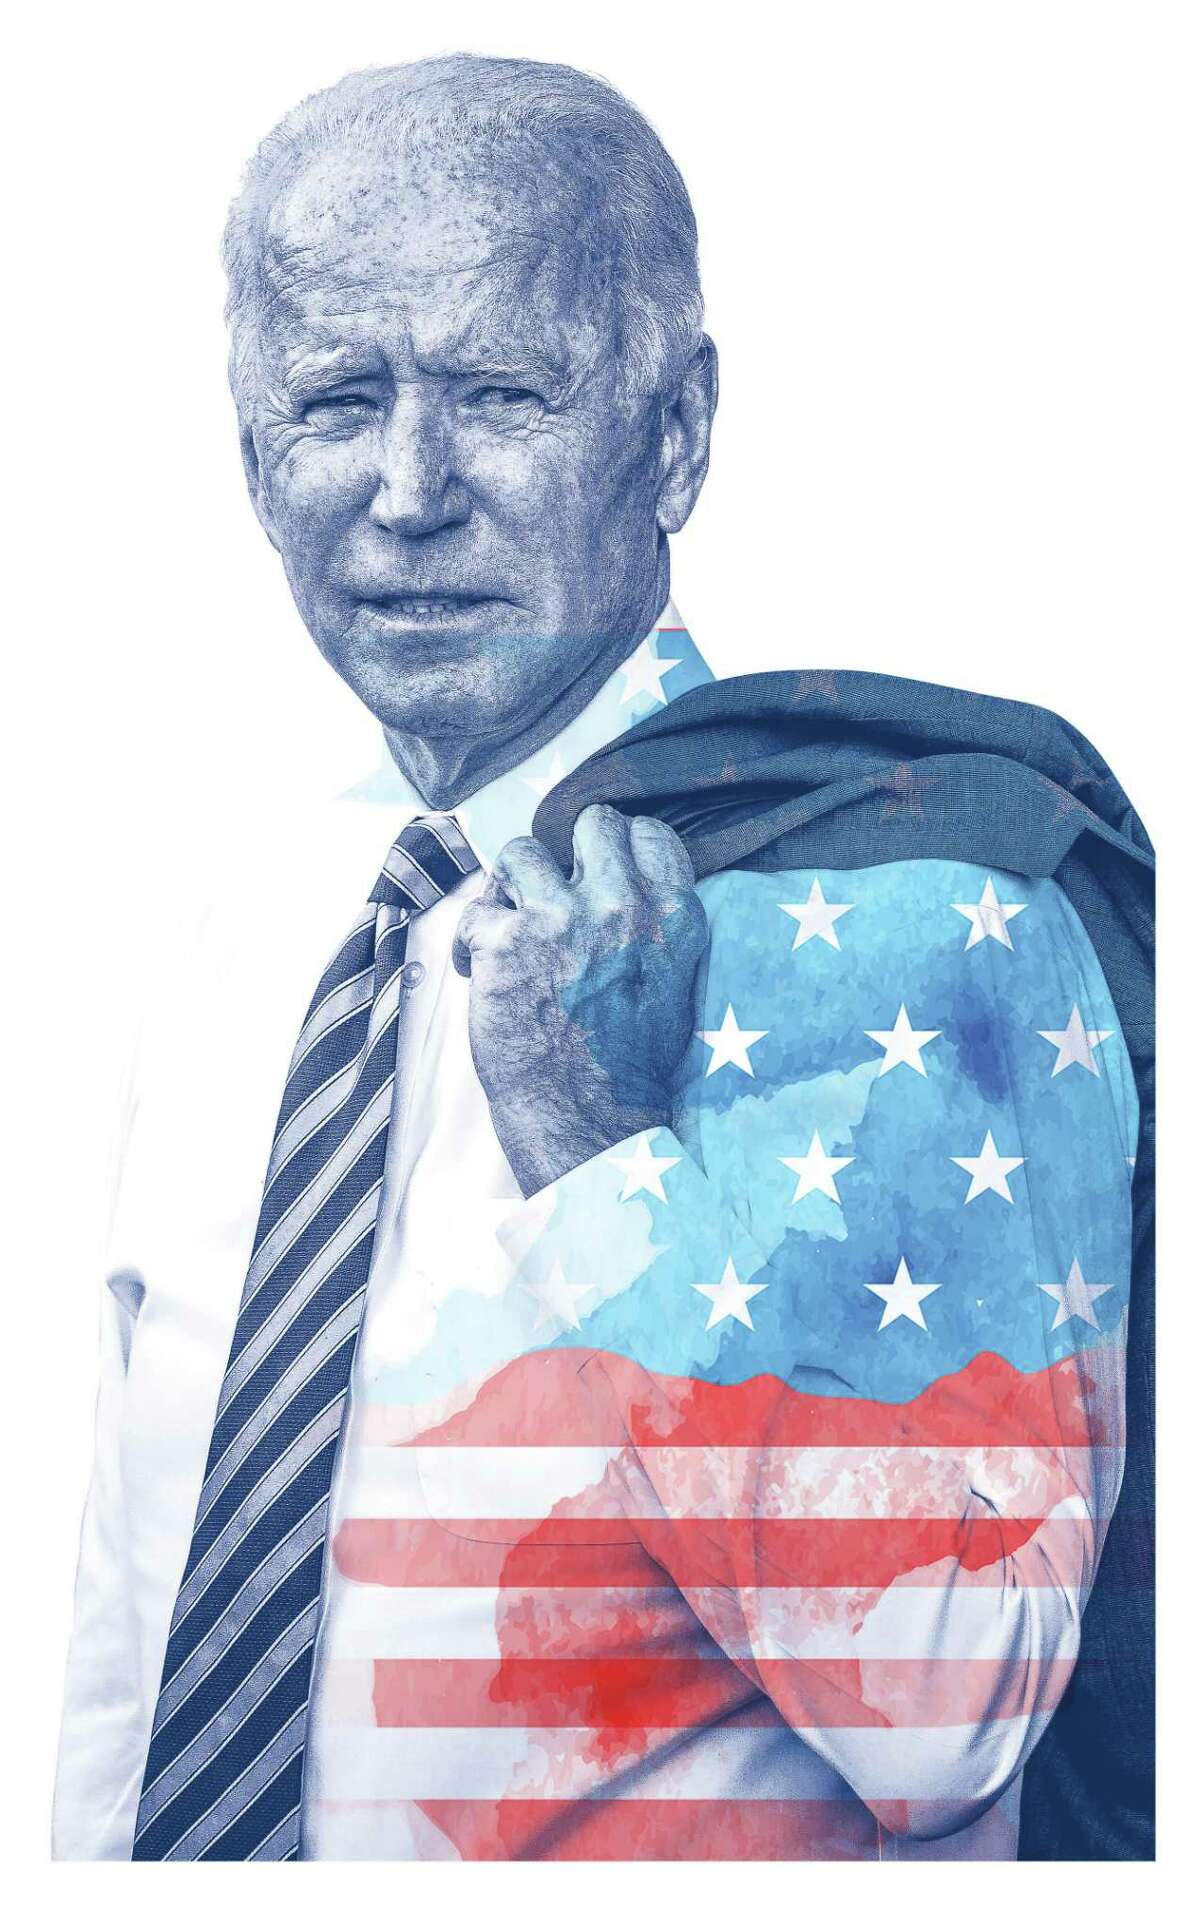 It will come as no surprise to readers of this page that we endorse Mr. Biden for president. Four years of Donald Trump have left this nation bitterly divided at home, increasingly isolated in the world, struggling through a mismanaged pandemic that has left more than 217,000 Americans dead, and searching for its moral compass.